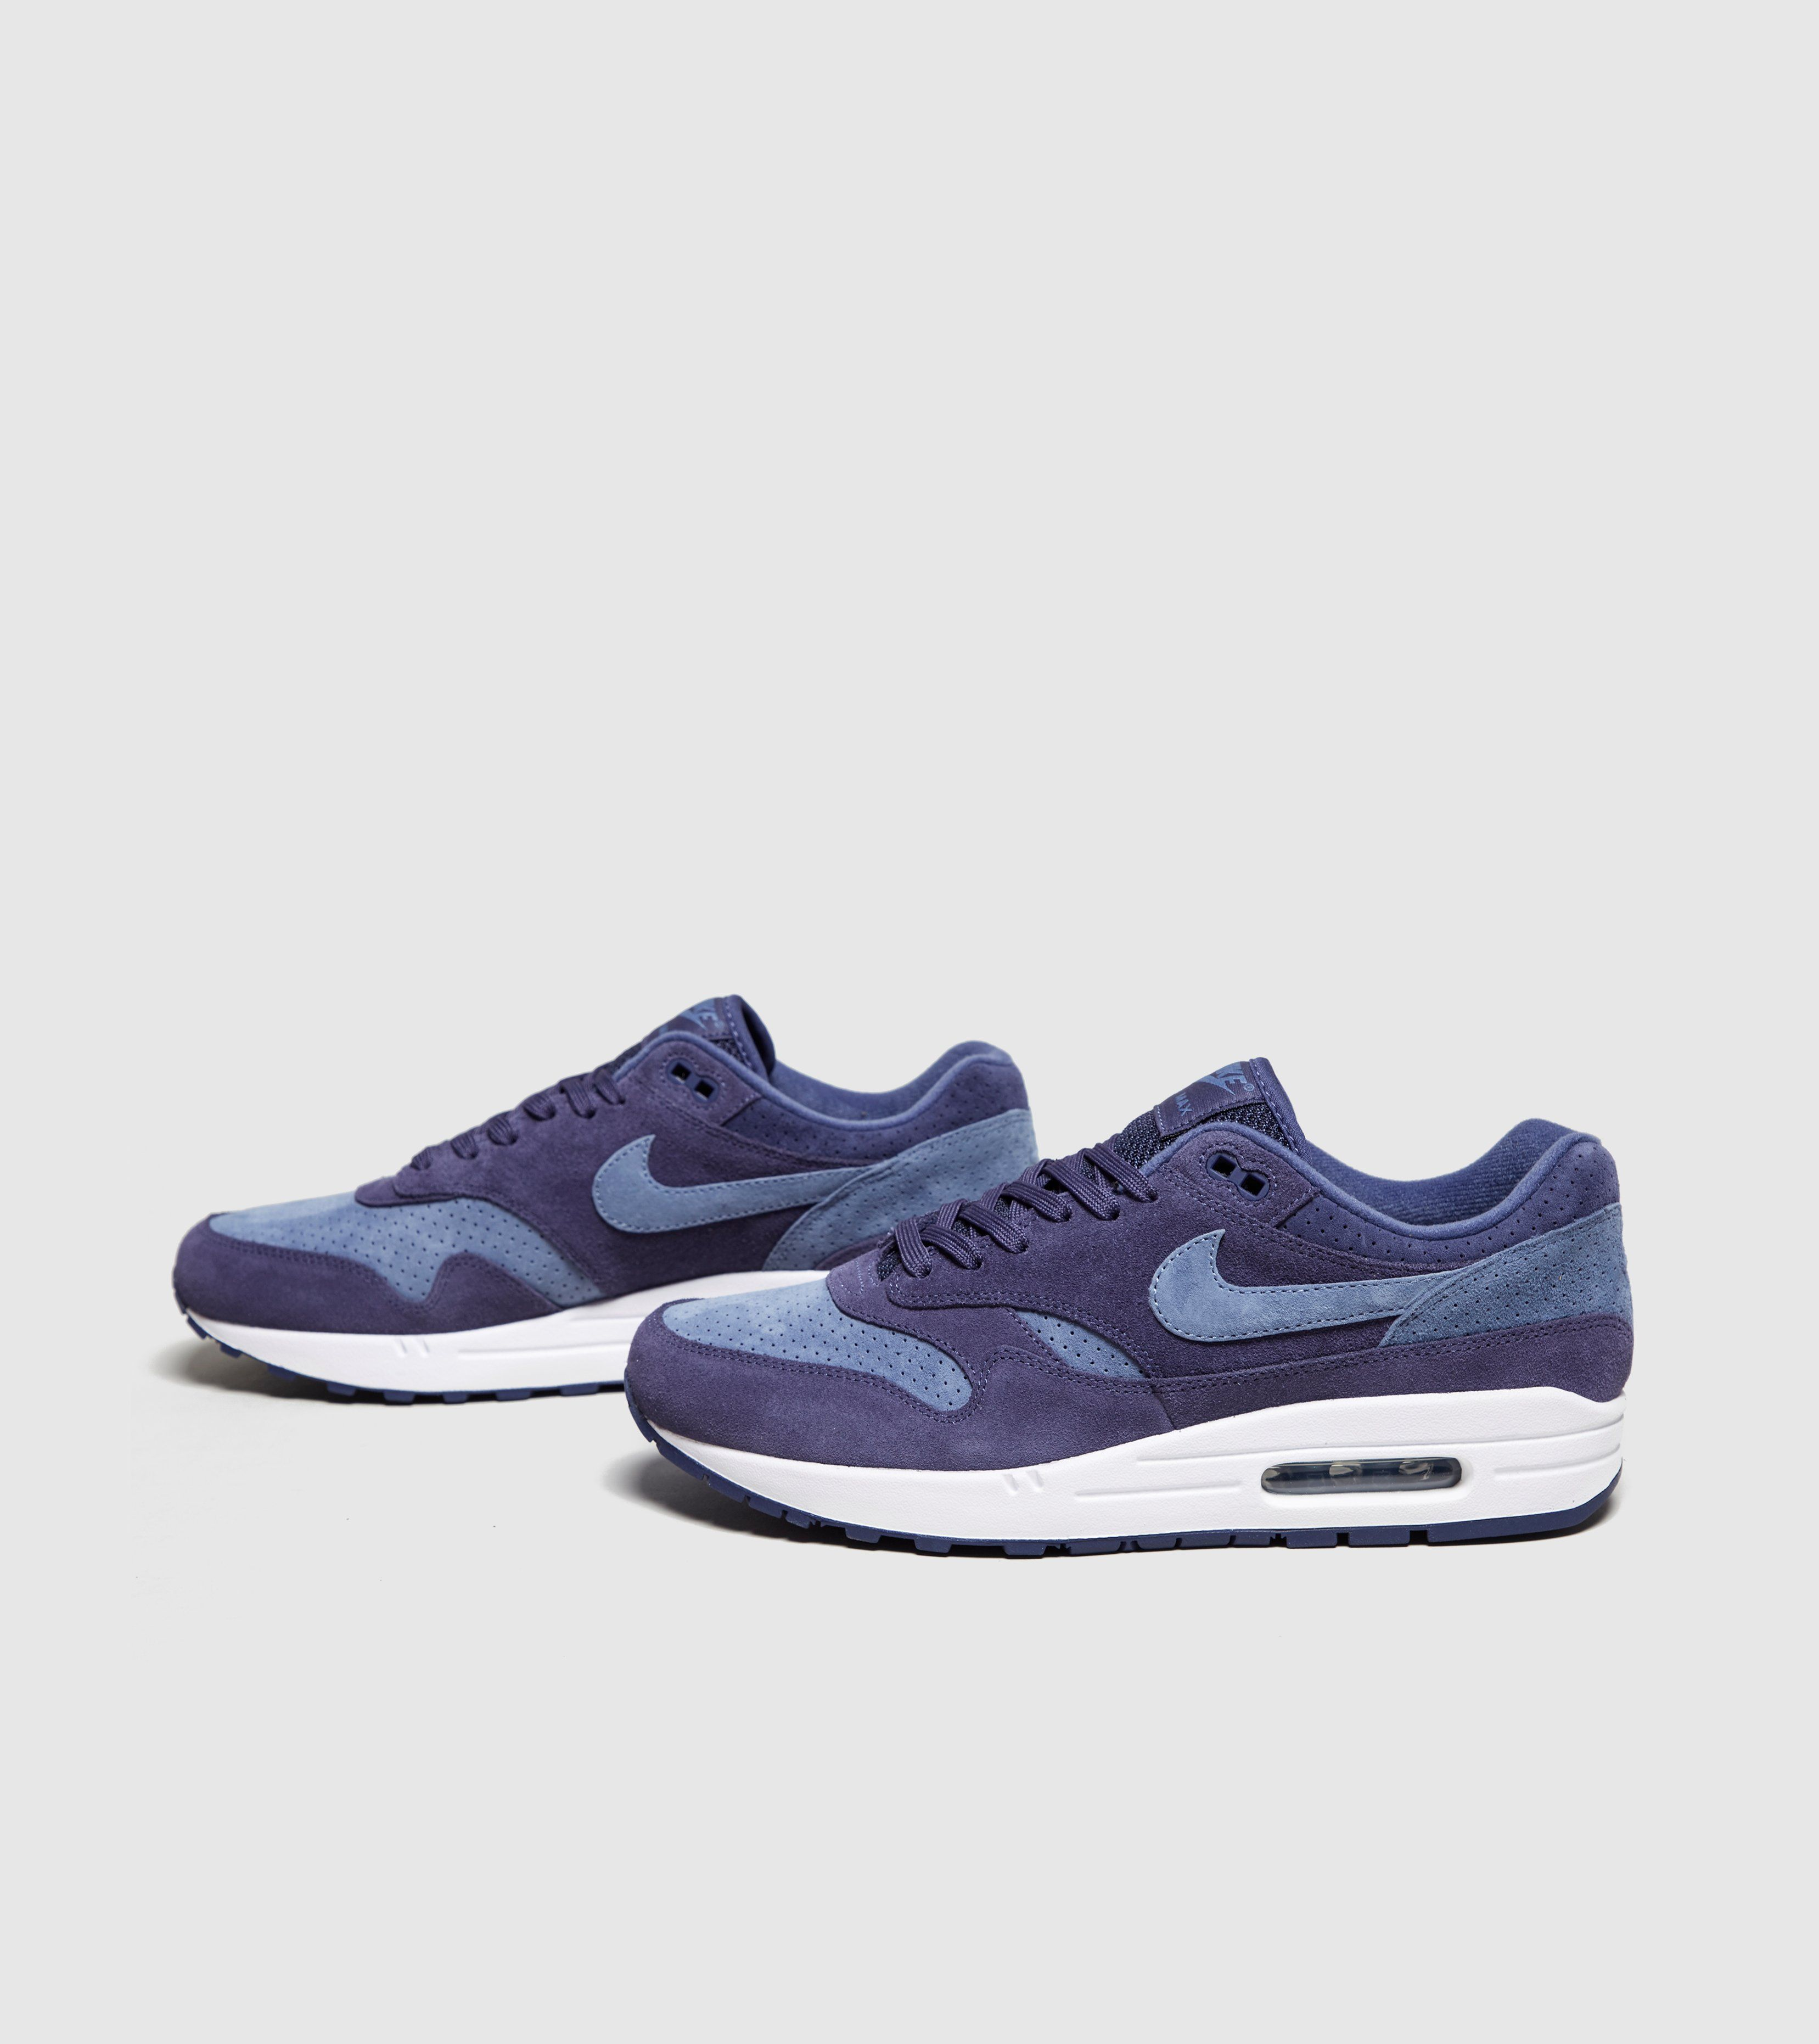 new zealand nike air max one denim f787c 658da